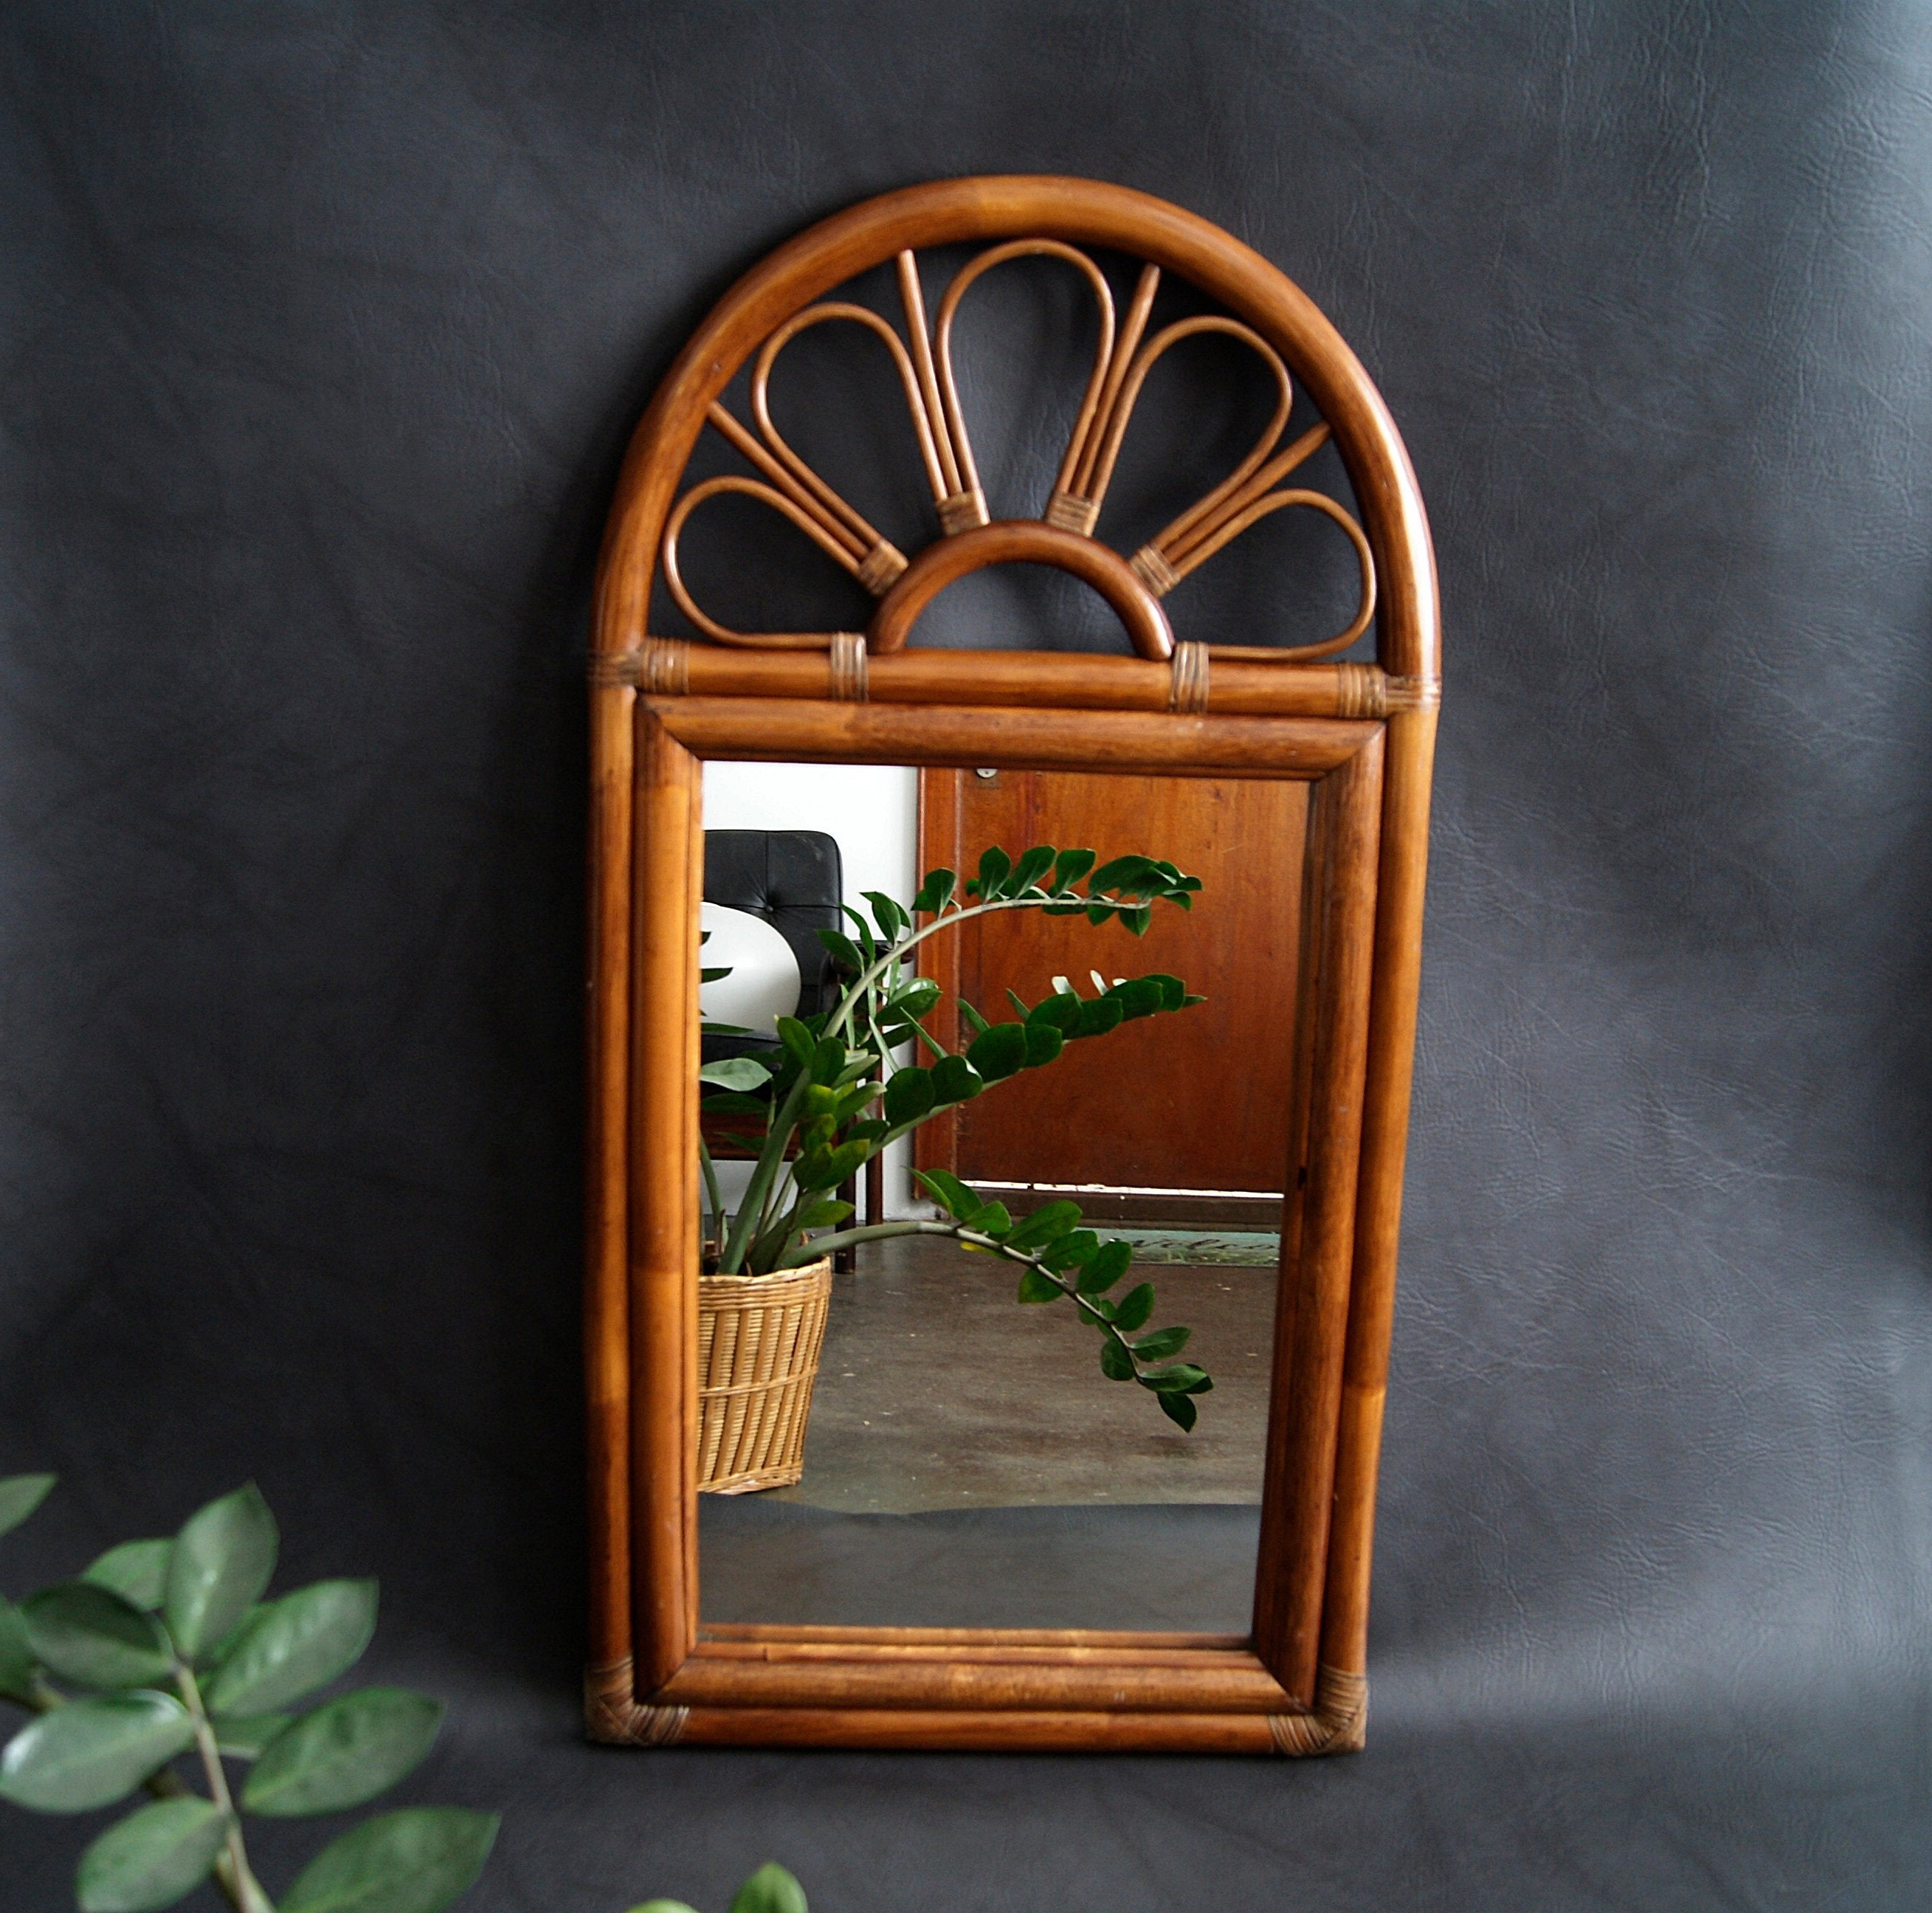 Faux Window Wood Wall Mirrors With Regard To Newest Large Bamboo Mirror, Wall Mirror, Faux Bamboo, Wood Mirror Mid Century (View 6 of 20)